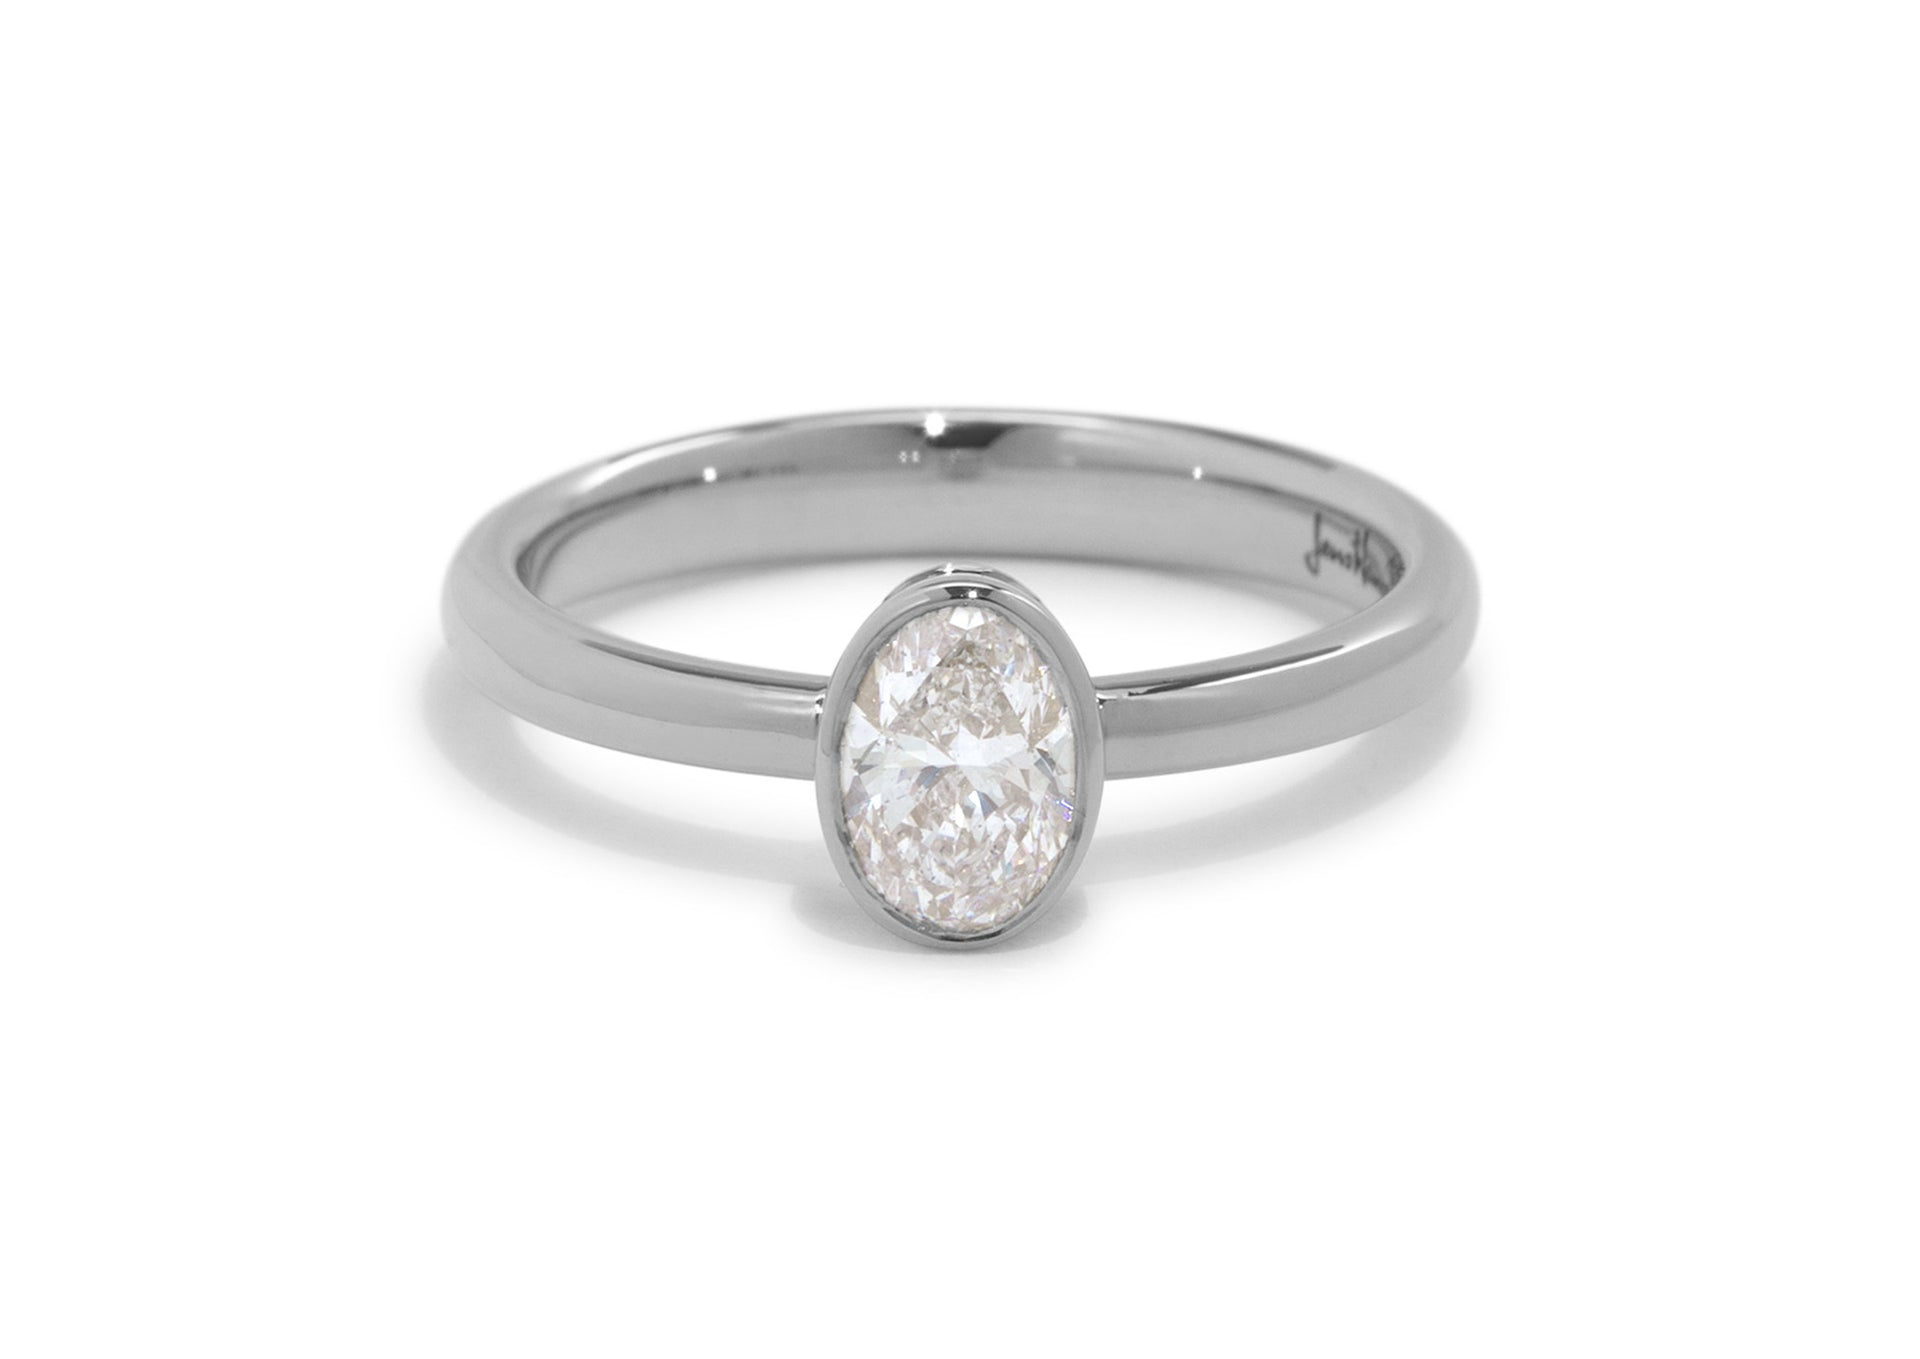 Oval Diamond Bezel Engagement Ring, White Gold & Platinum